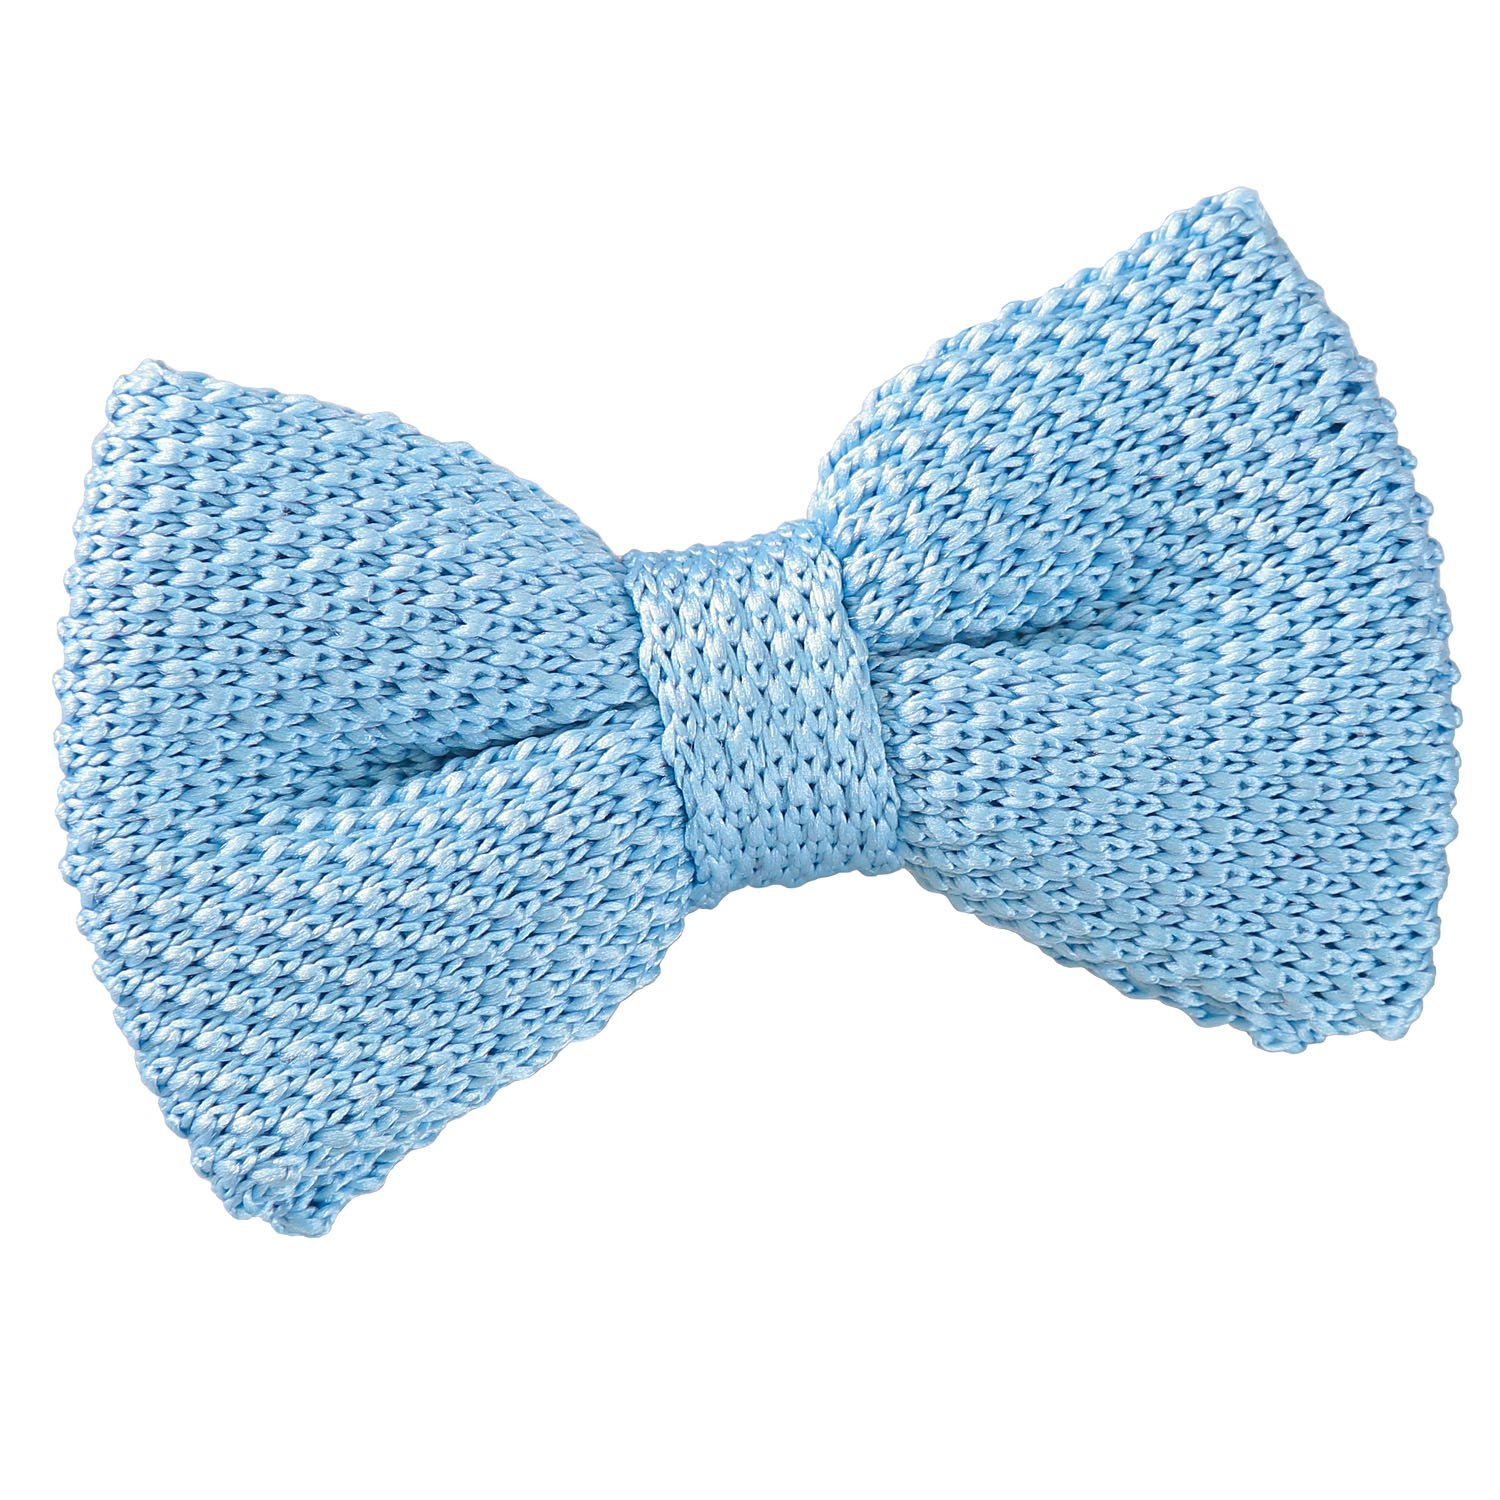 DQT Knit Knitted Plain Solid Baby Blue Classic Mens Pre-Tied Bow Tie